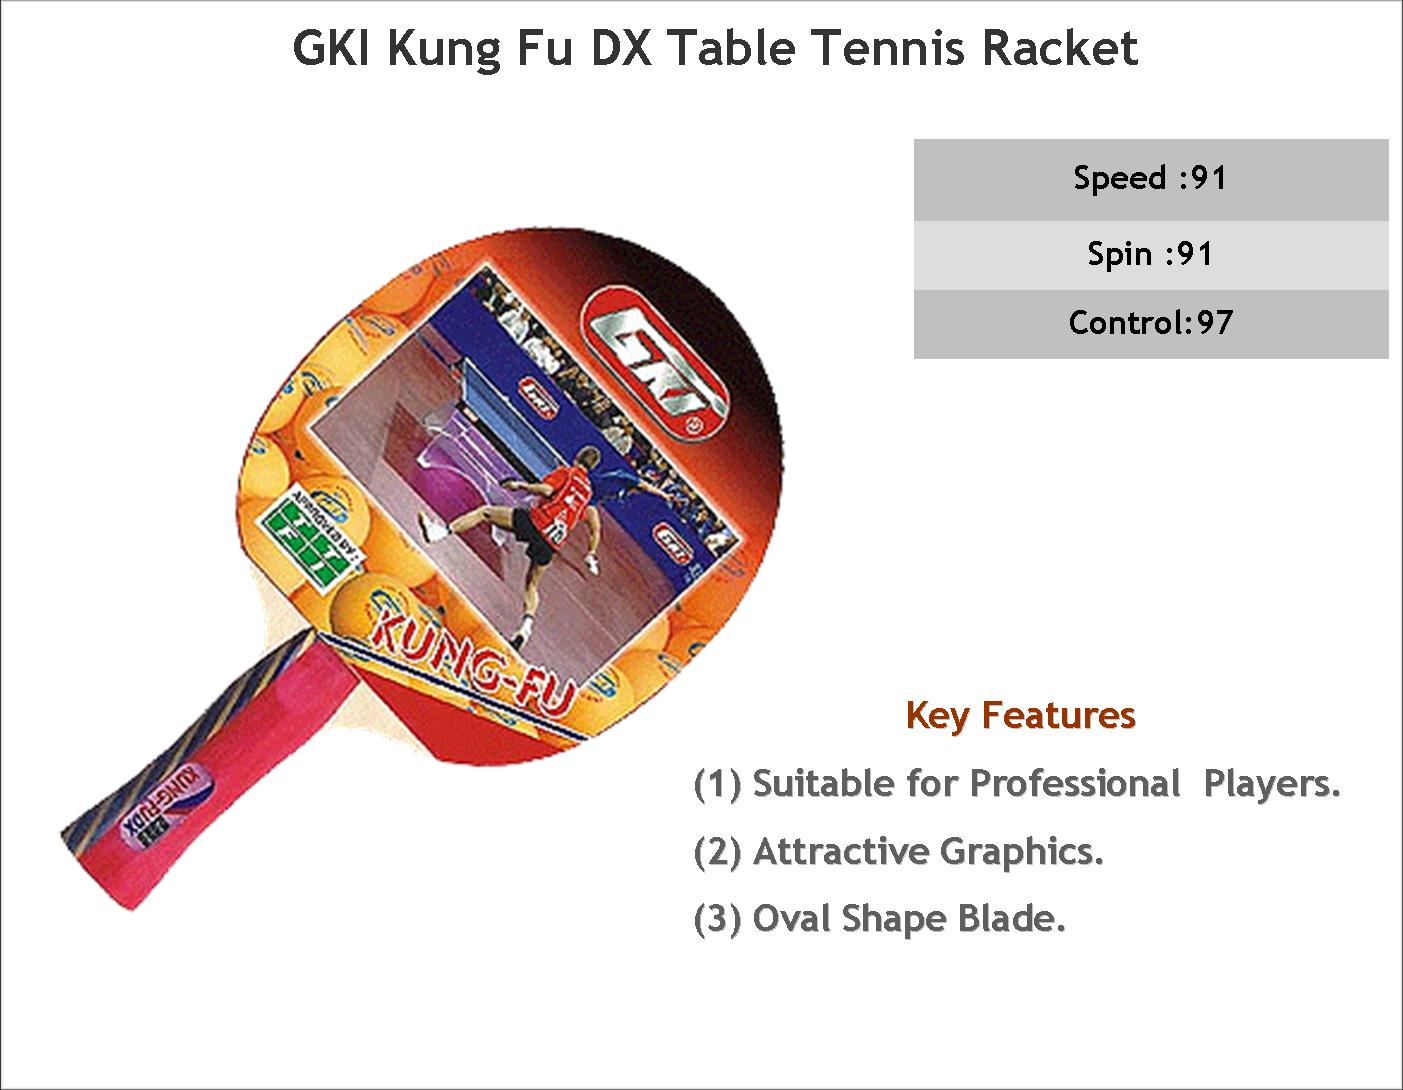 GKI Table Tennis Kung Fu DX